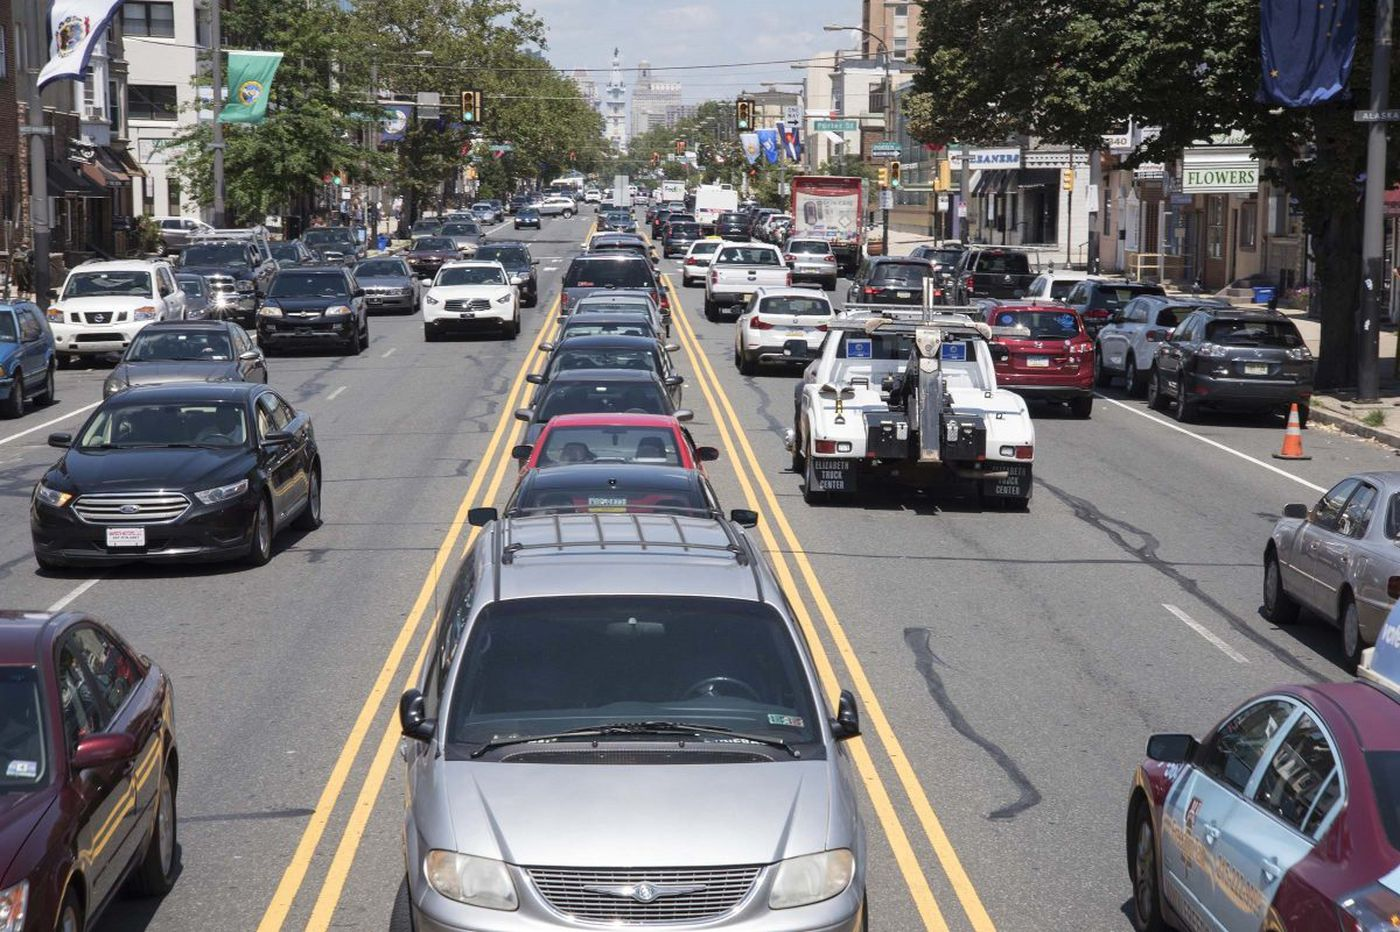 Broad Street median parking: Do-Gooders, Old-Timers, and a hot potato